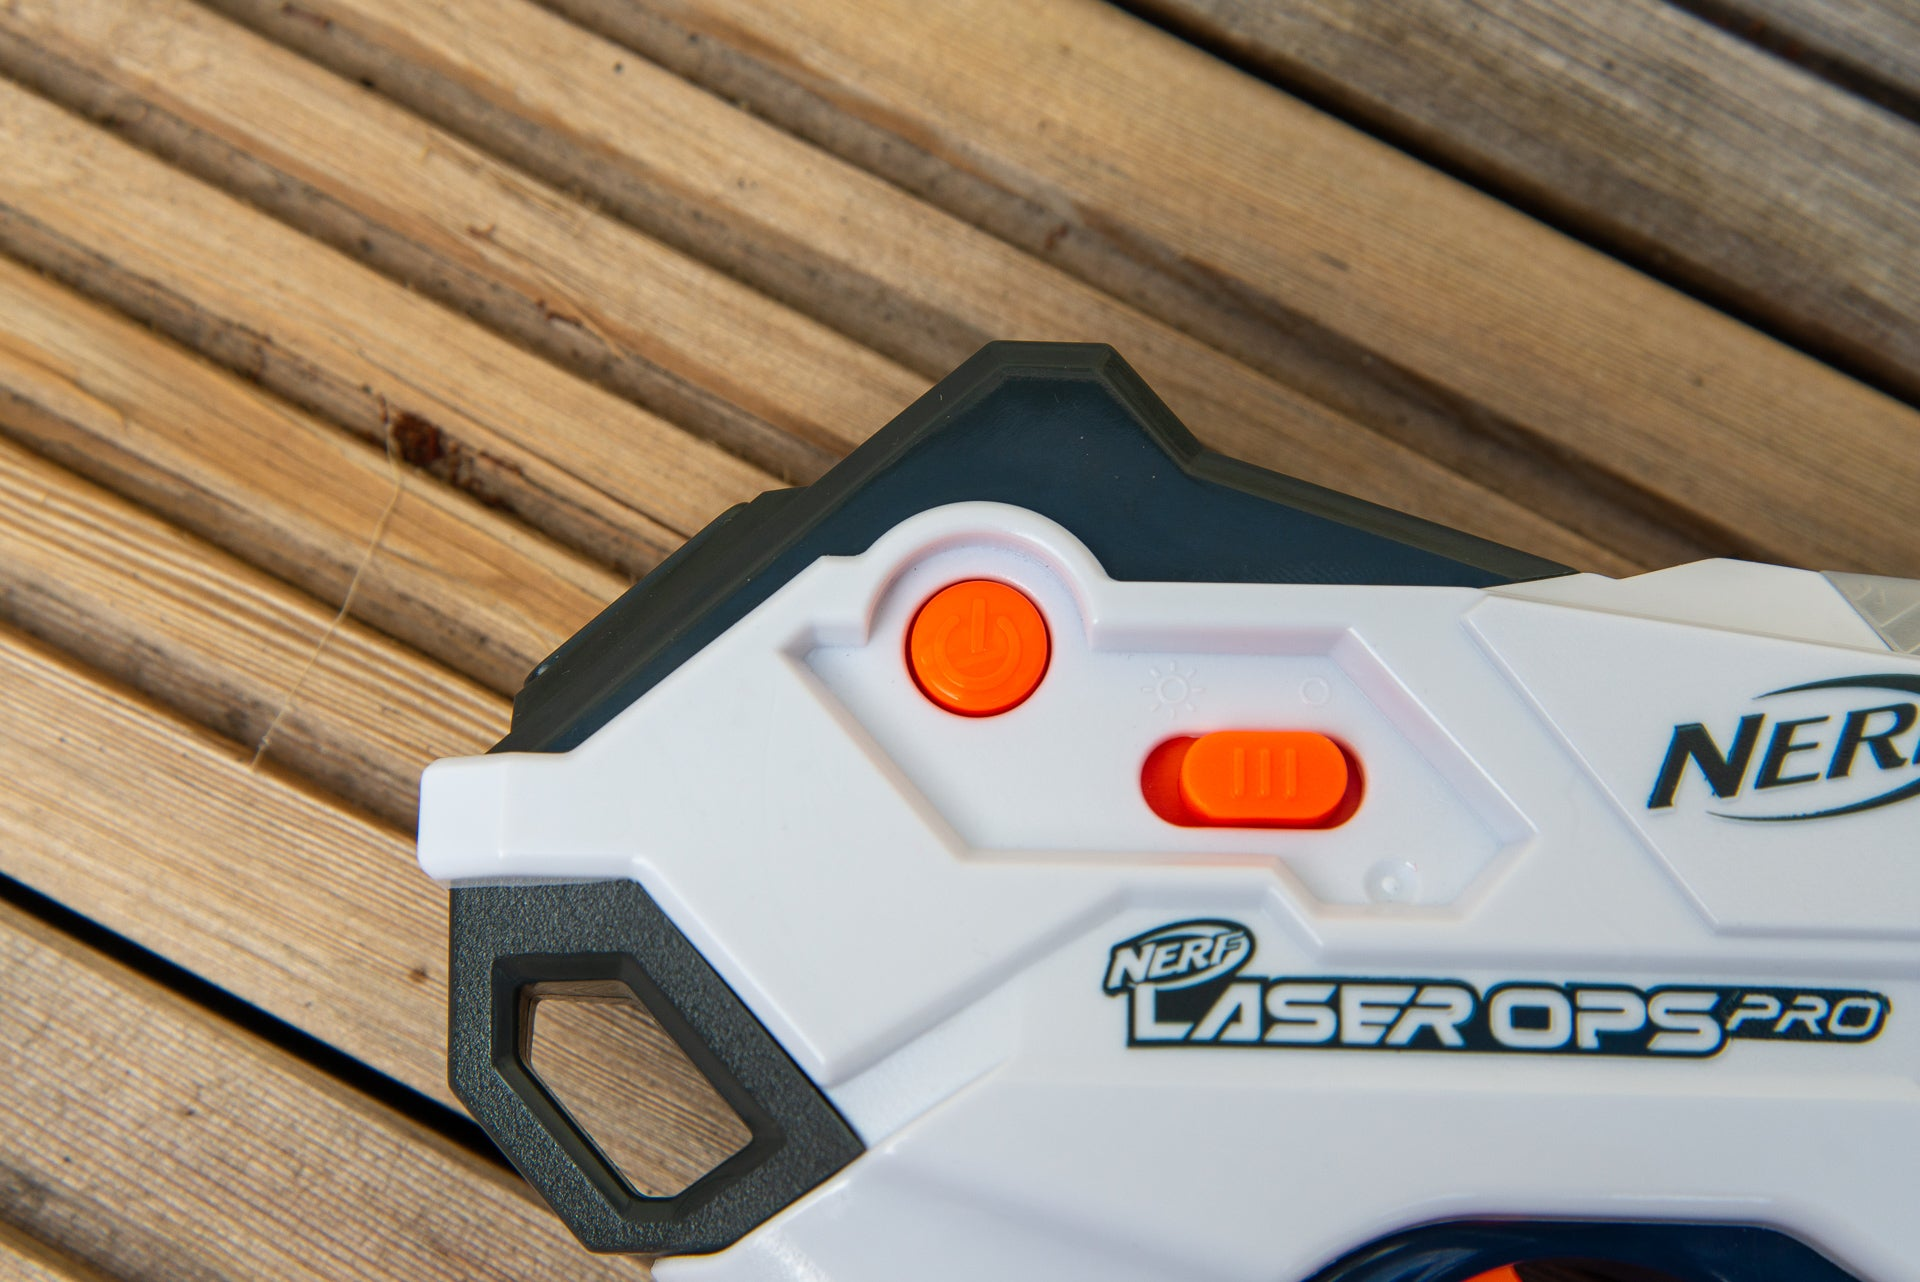 Nerf Laser Ops Pro Alphapoint power and lighting control